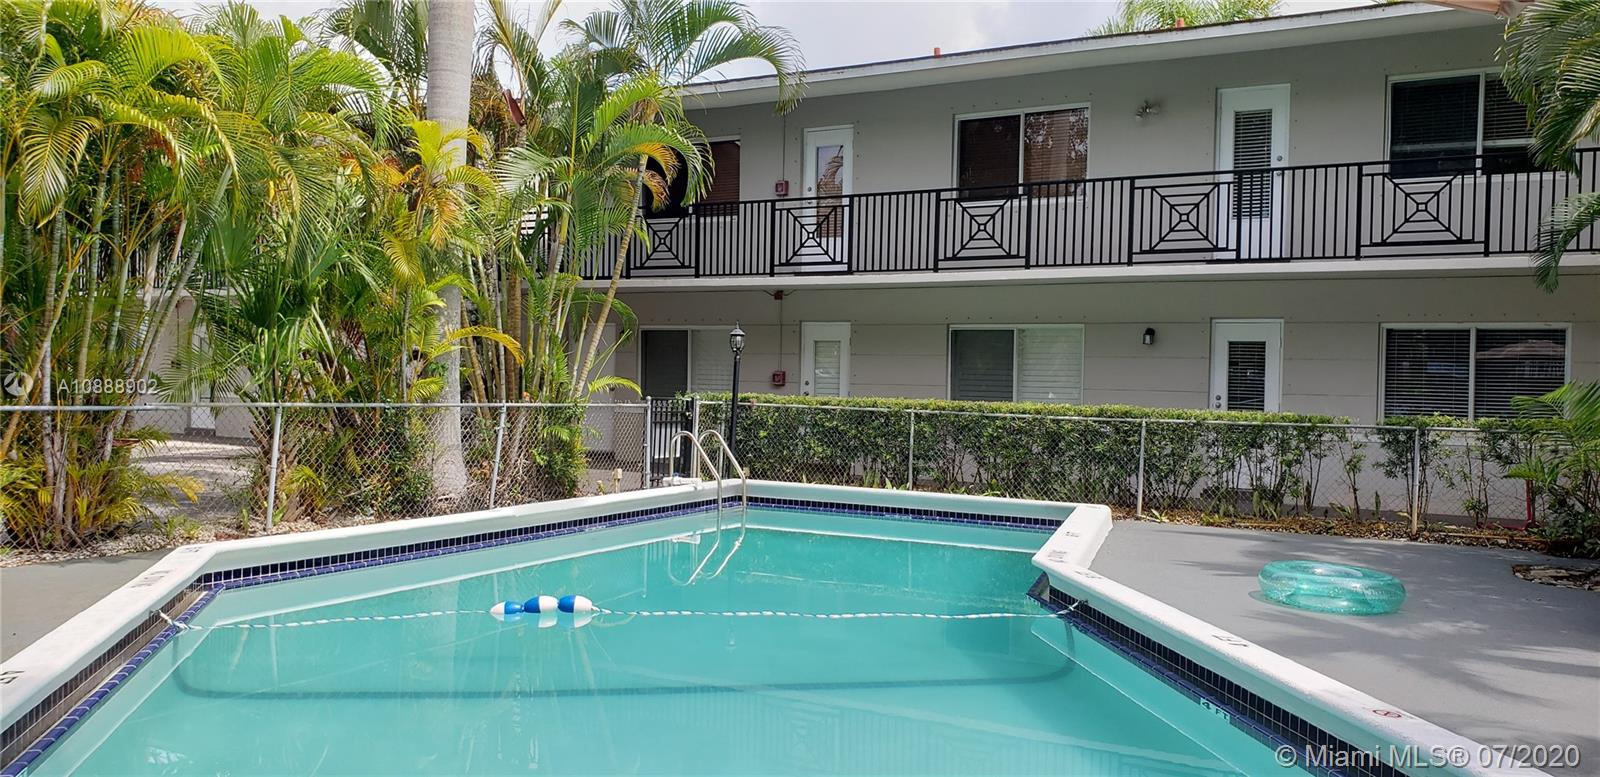 95  Edgewater Dr #102 For Sale A10888902, FL